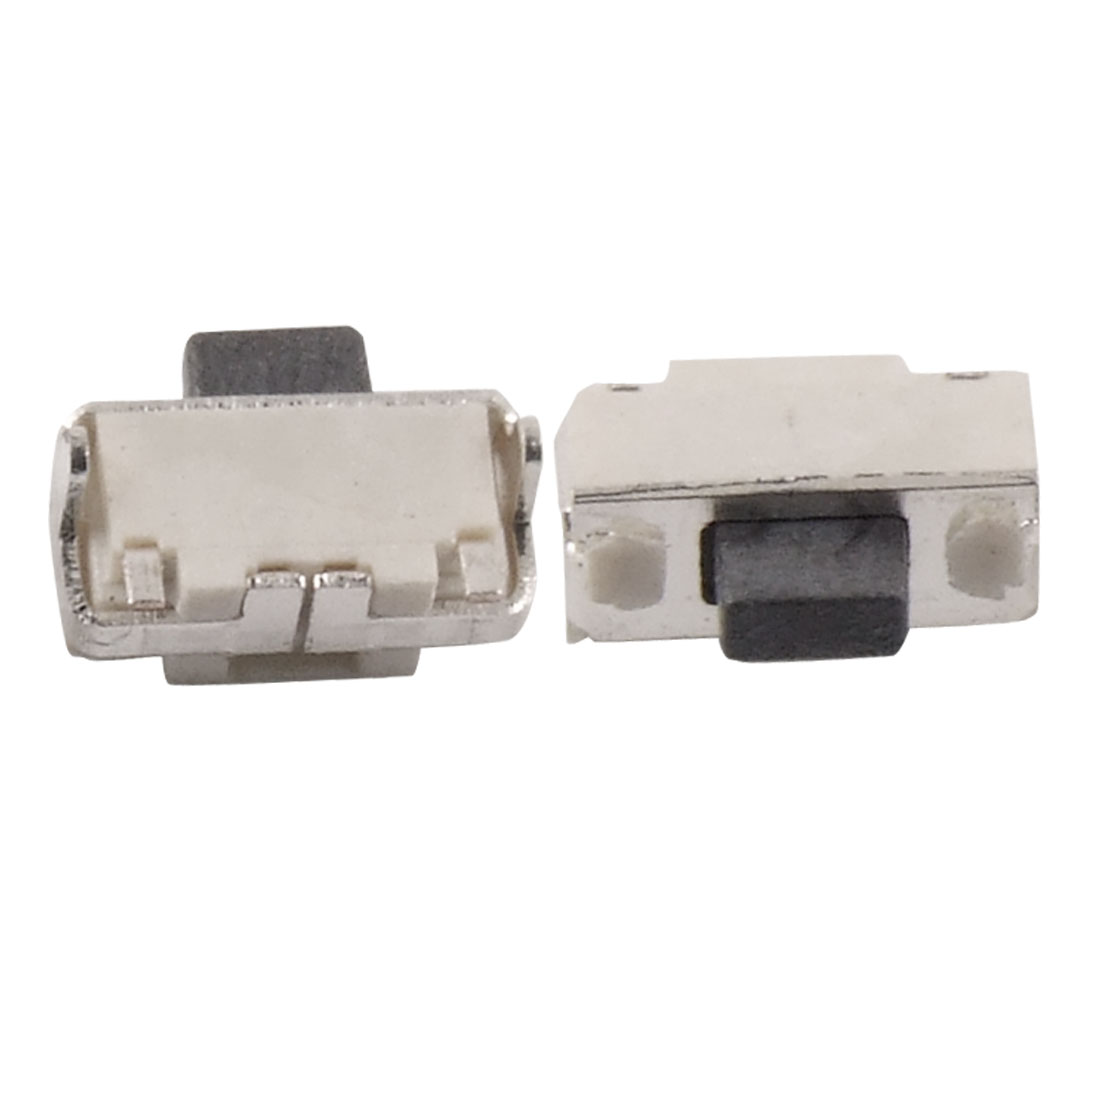 20-x-Momentary-Tactile-Tact-Push-Button-Switch-SMT-SMD-SPST-4-7x3-4x2-5mm